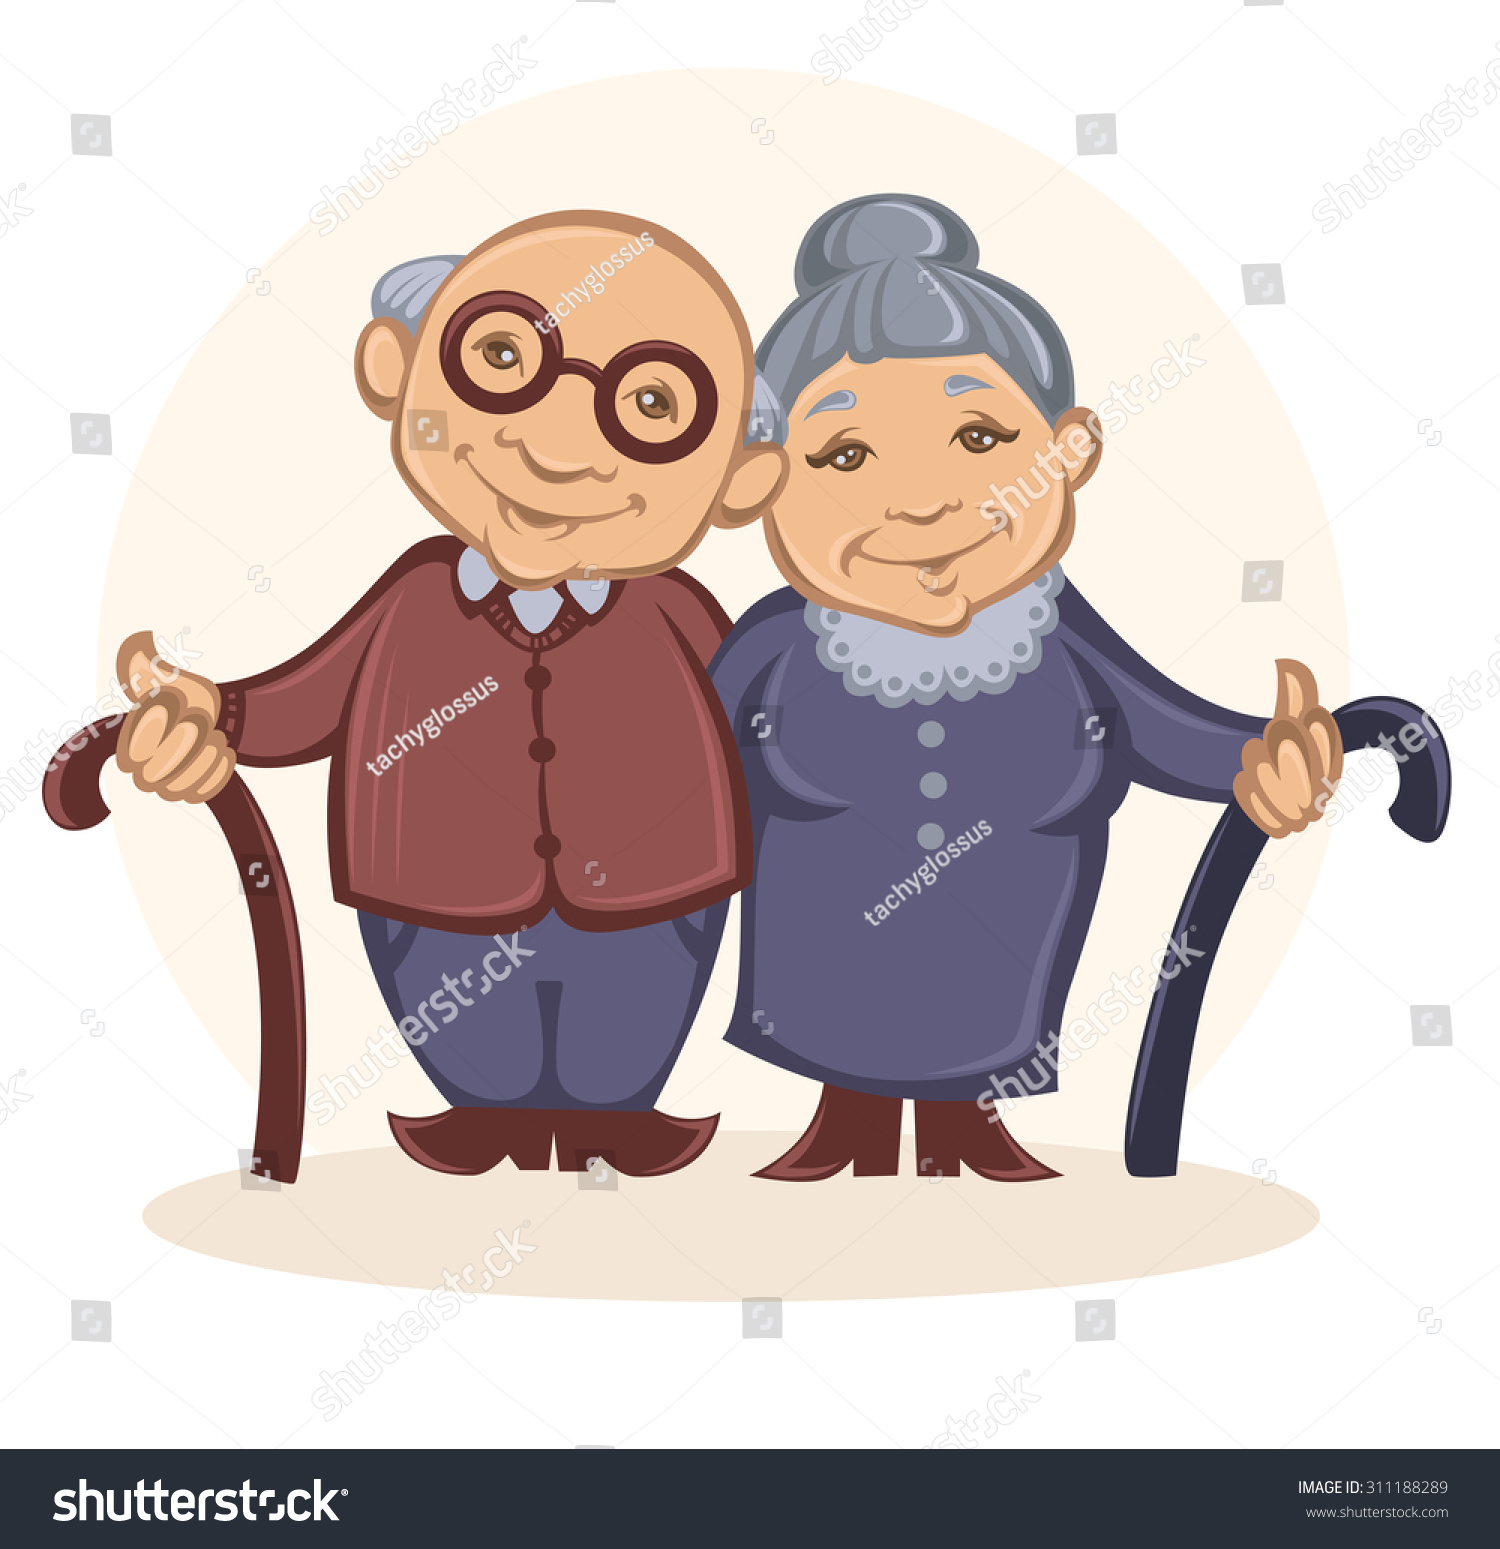 stock-vector-grandparents-vector-image-of-happy-old-people-in-cartoon-style-311188289.jpg